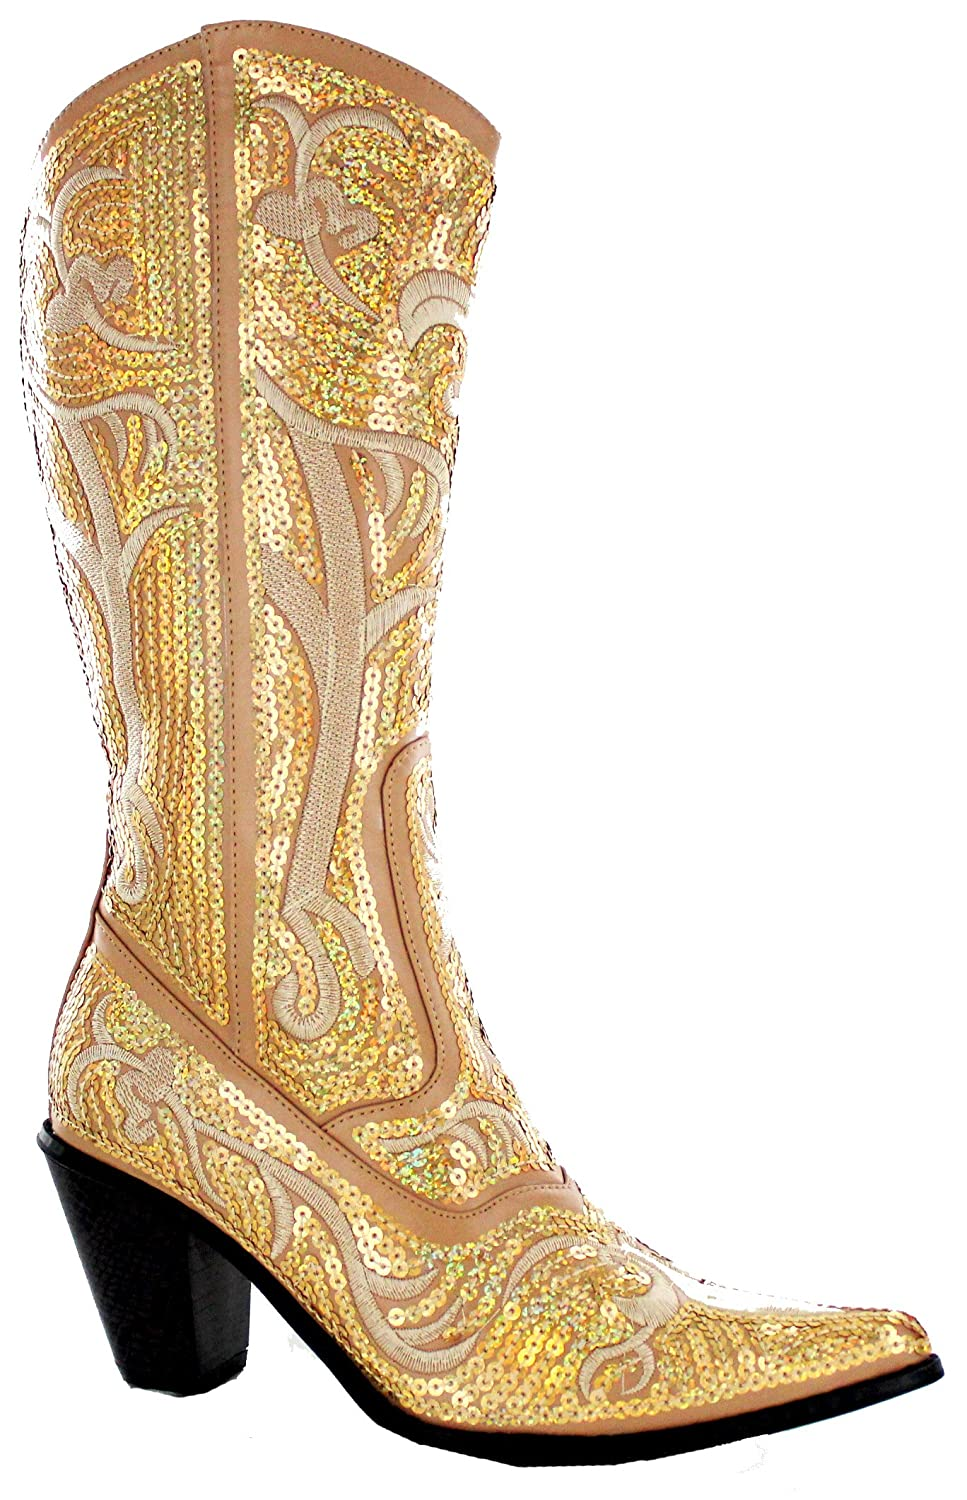 Helens Heart Bling Boots B00MC8F2YM 11 B(M) US|Gold